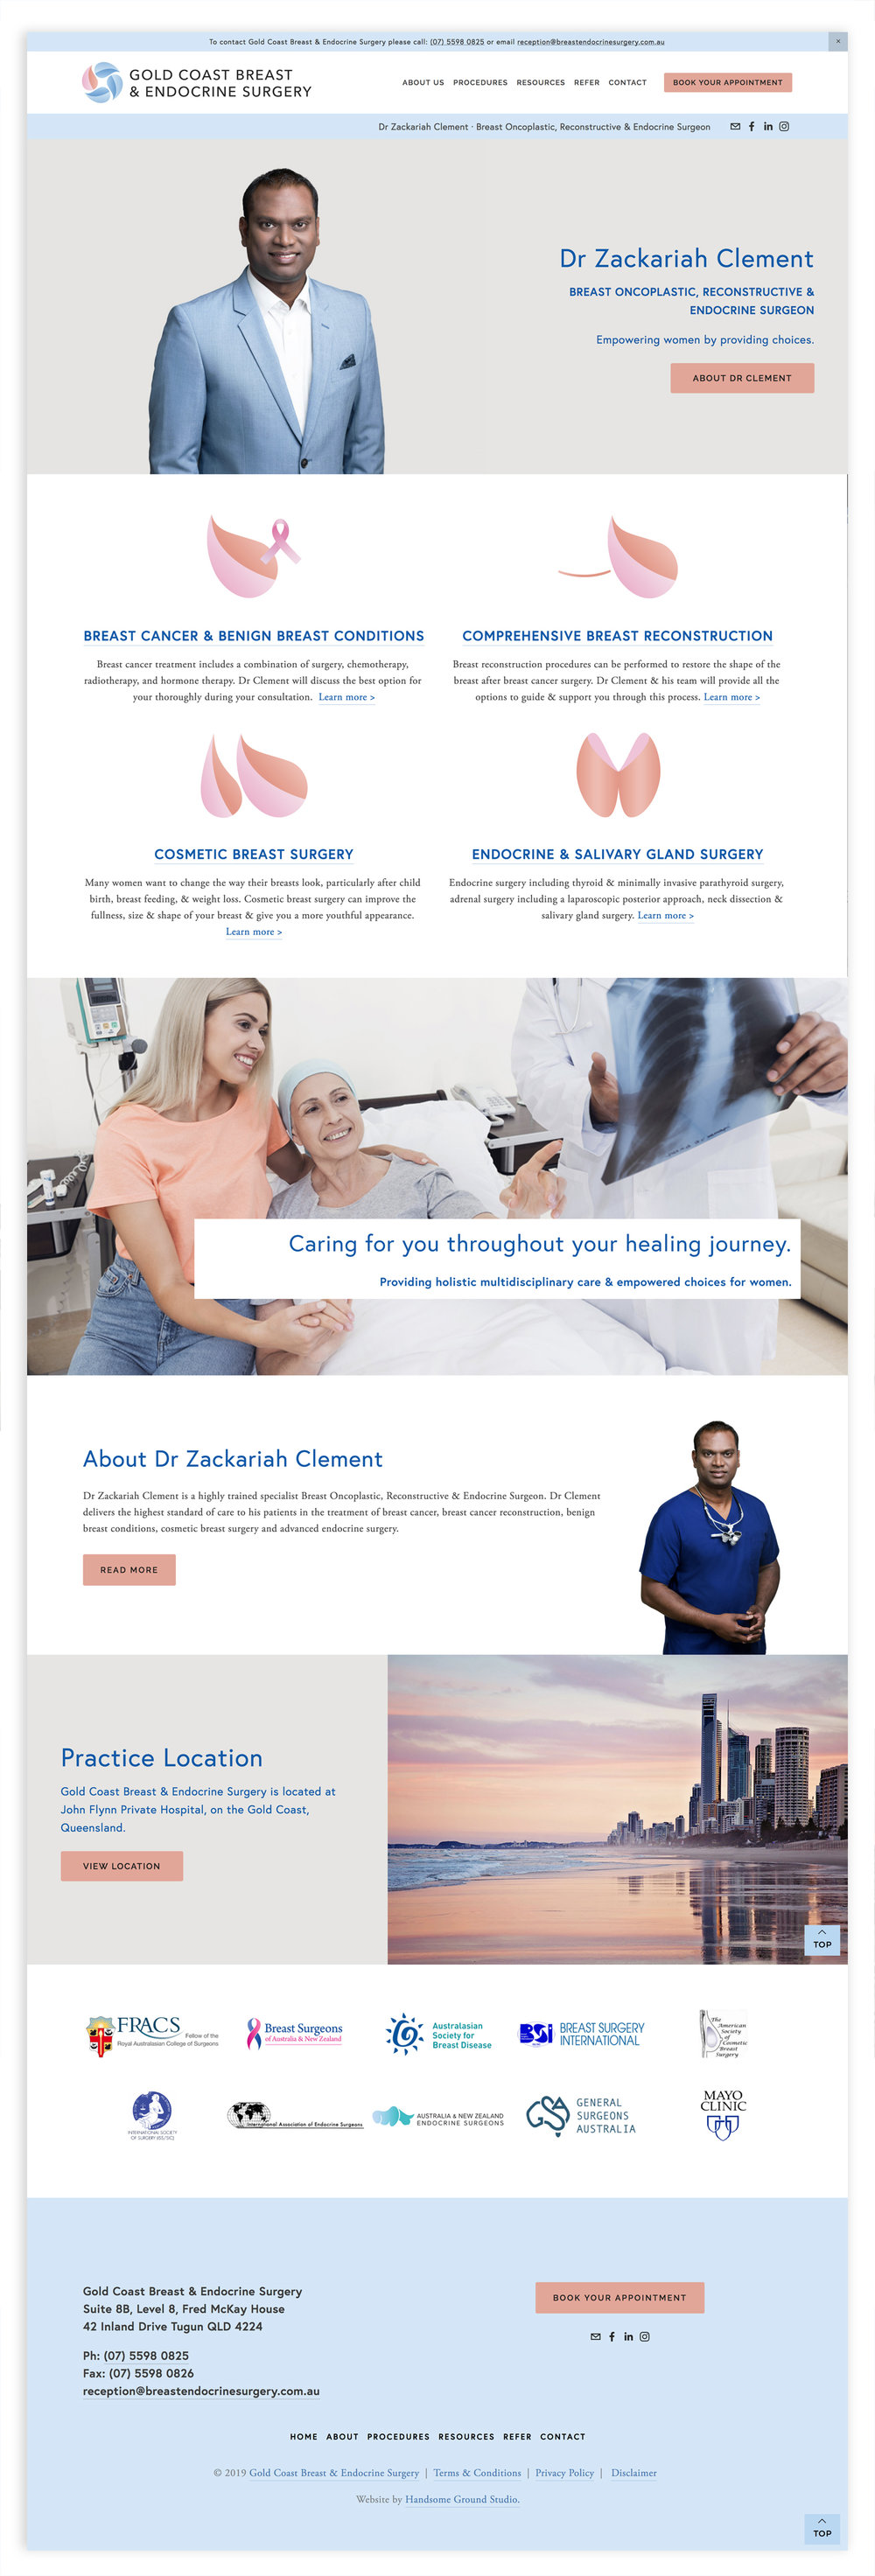 Breast Endocrine Surgeon website and Branding designed by Handsome Ground Studio Canberra.